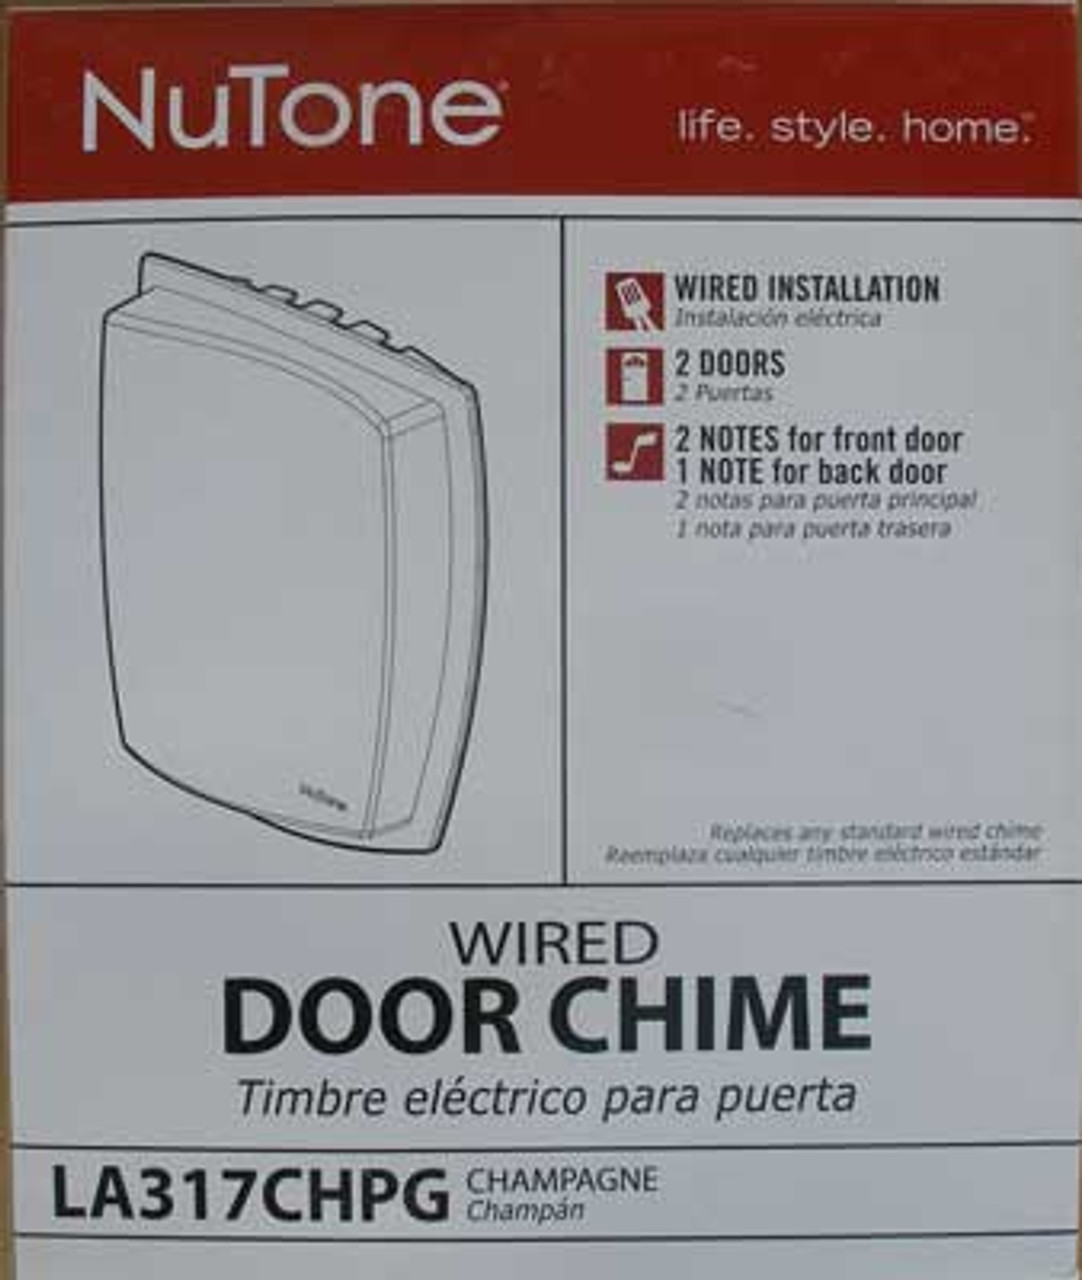 NuTone LA317CHPG Wired Door Chime Champagne - New